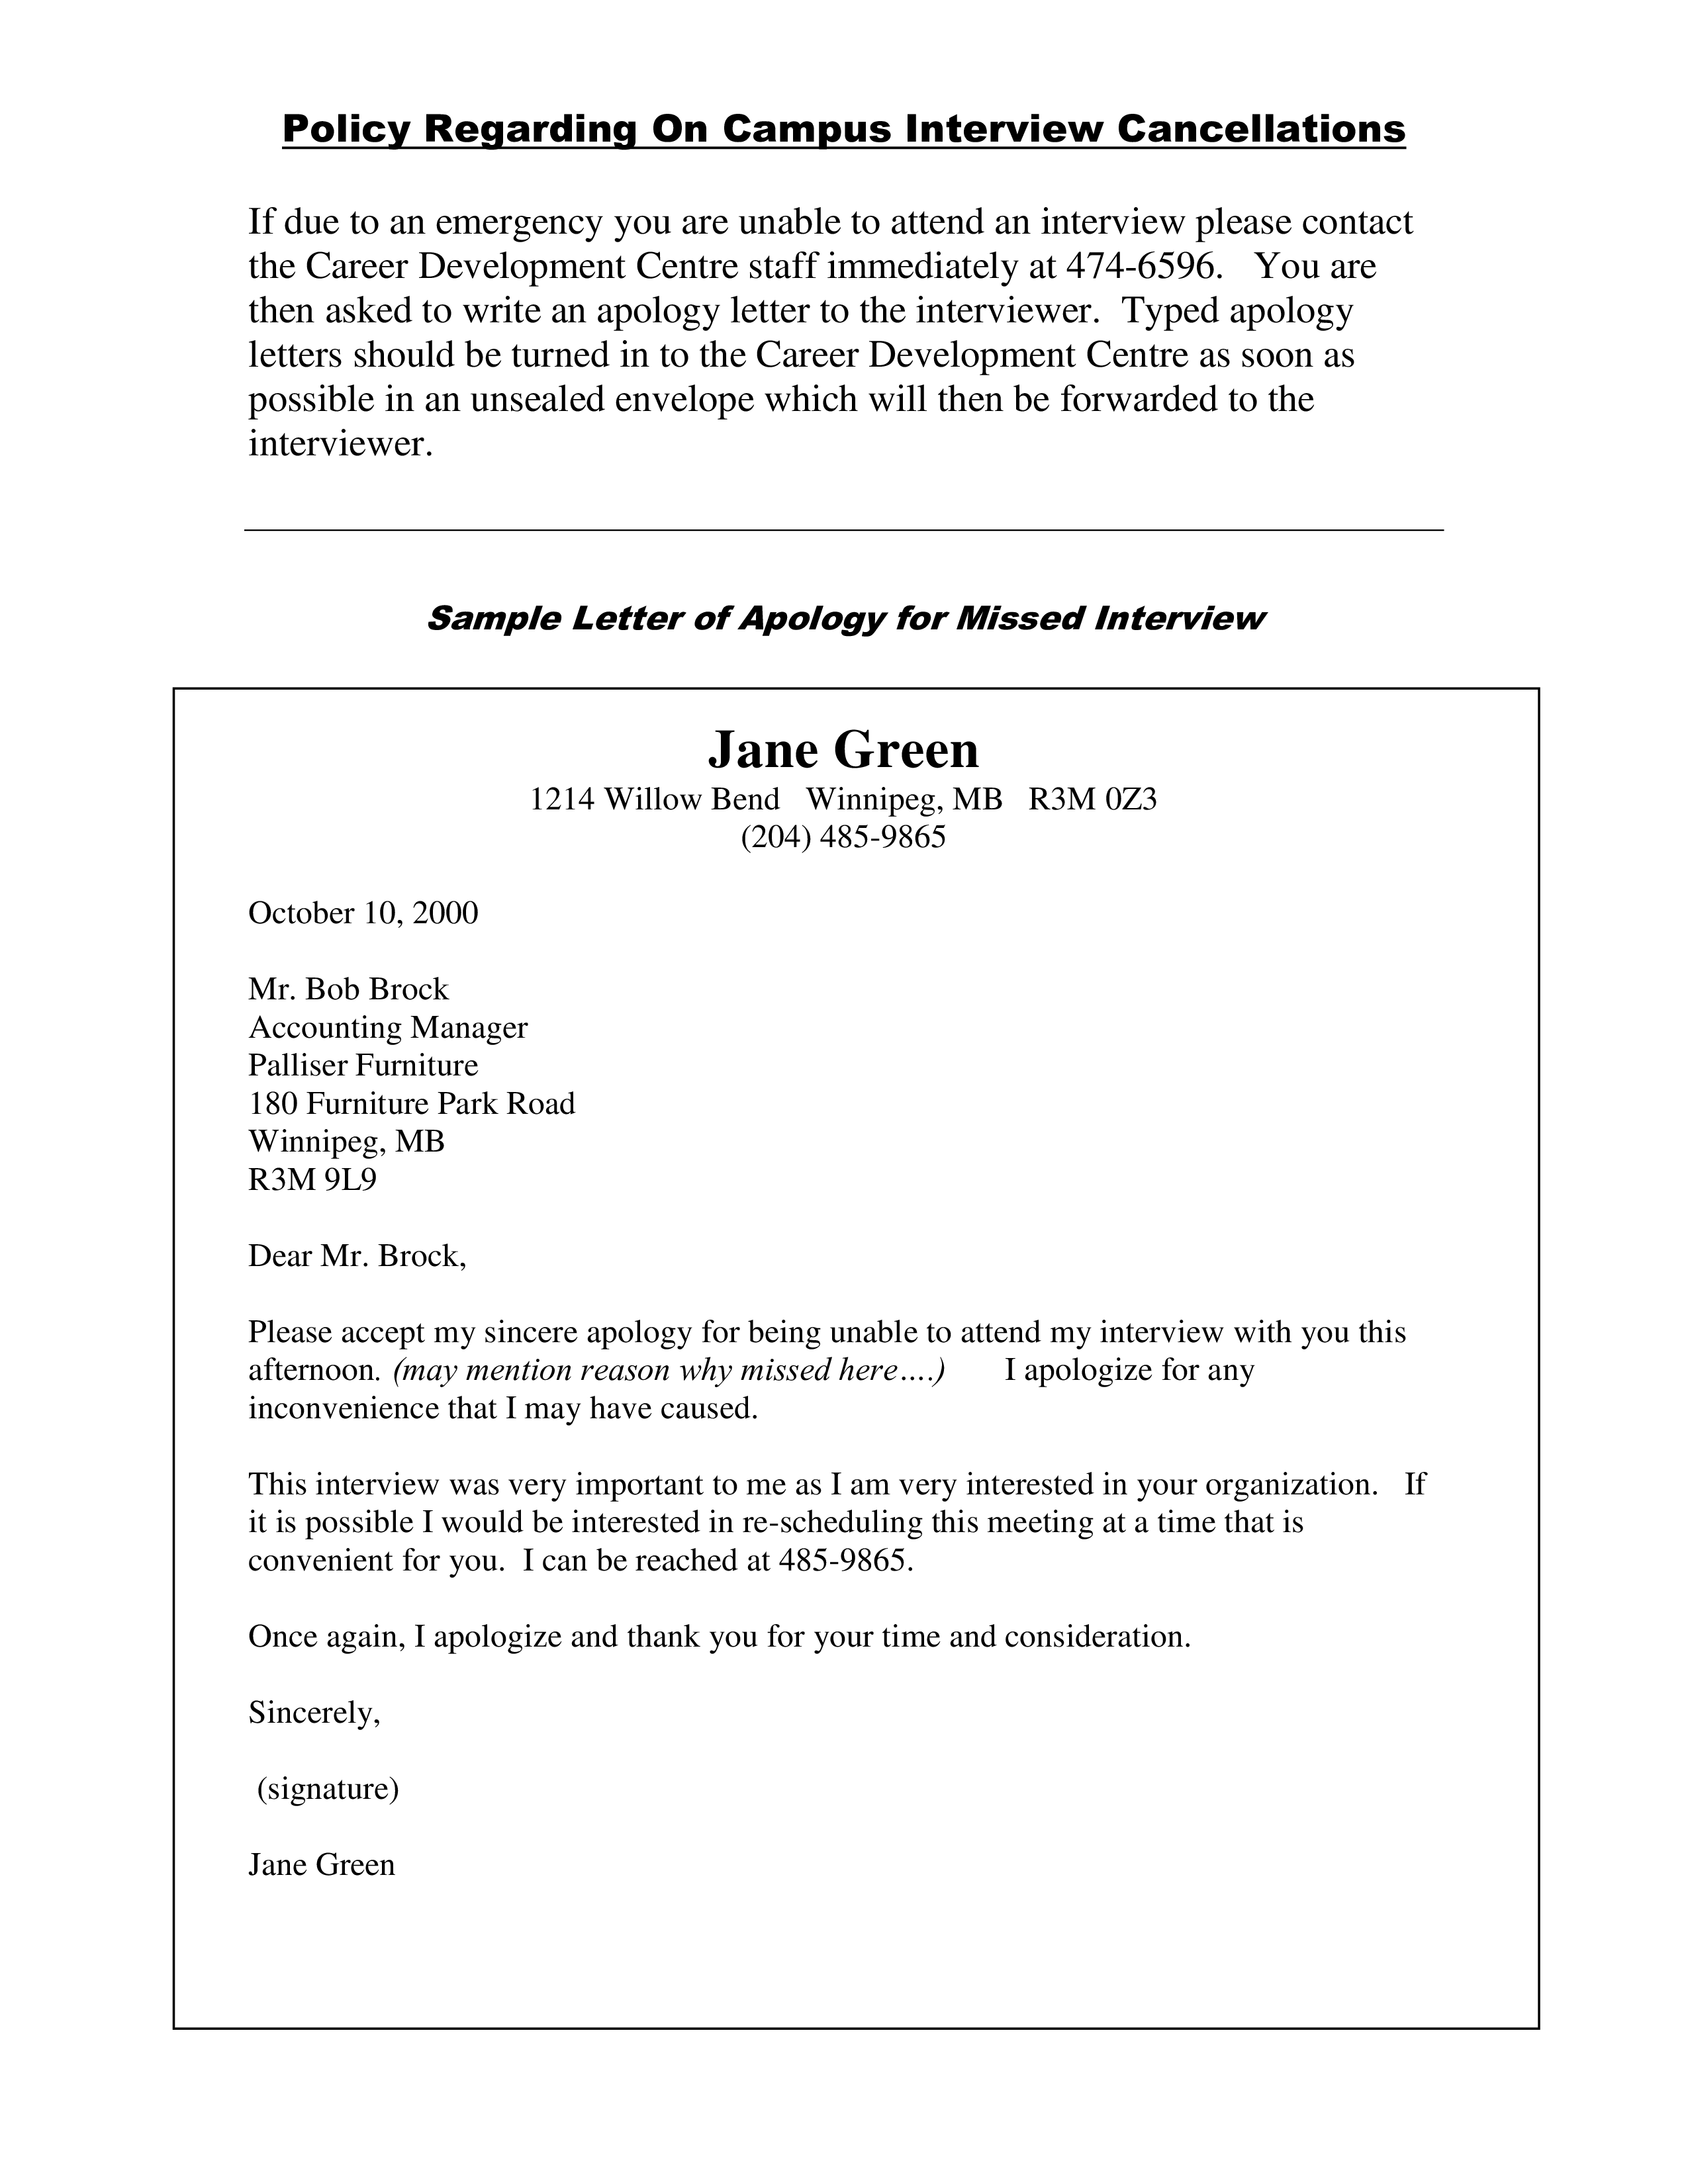 job interview apology letter main image download template